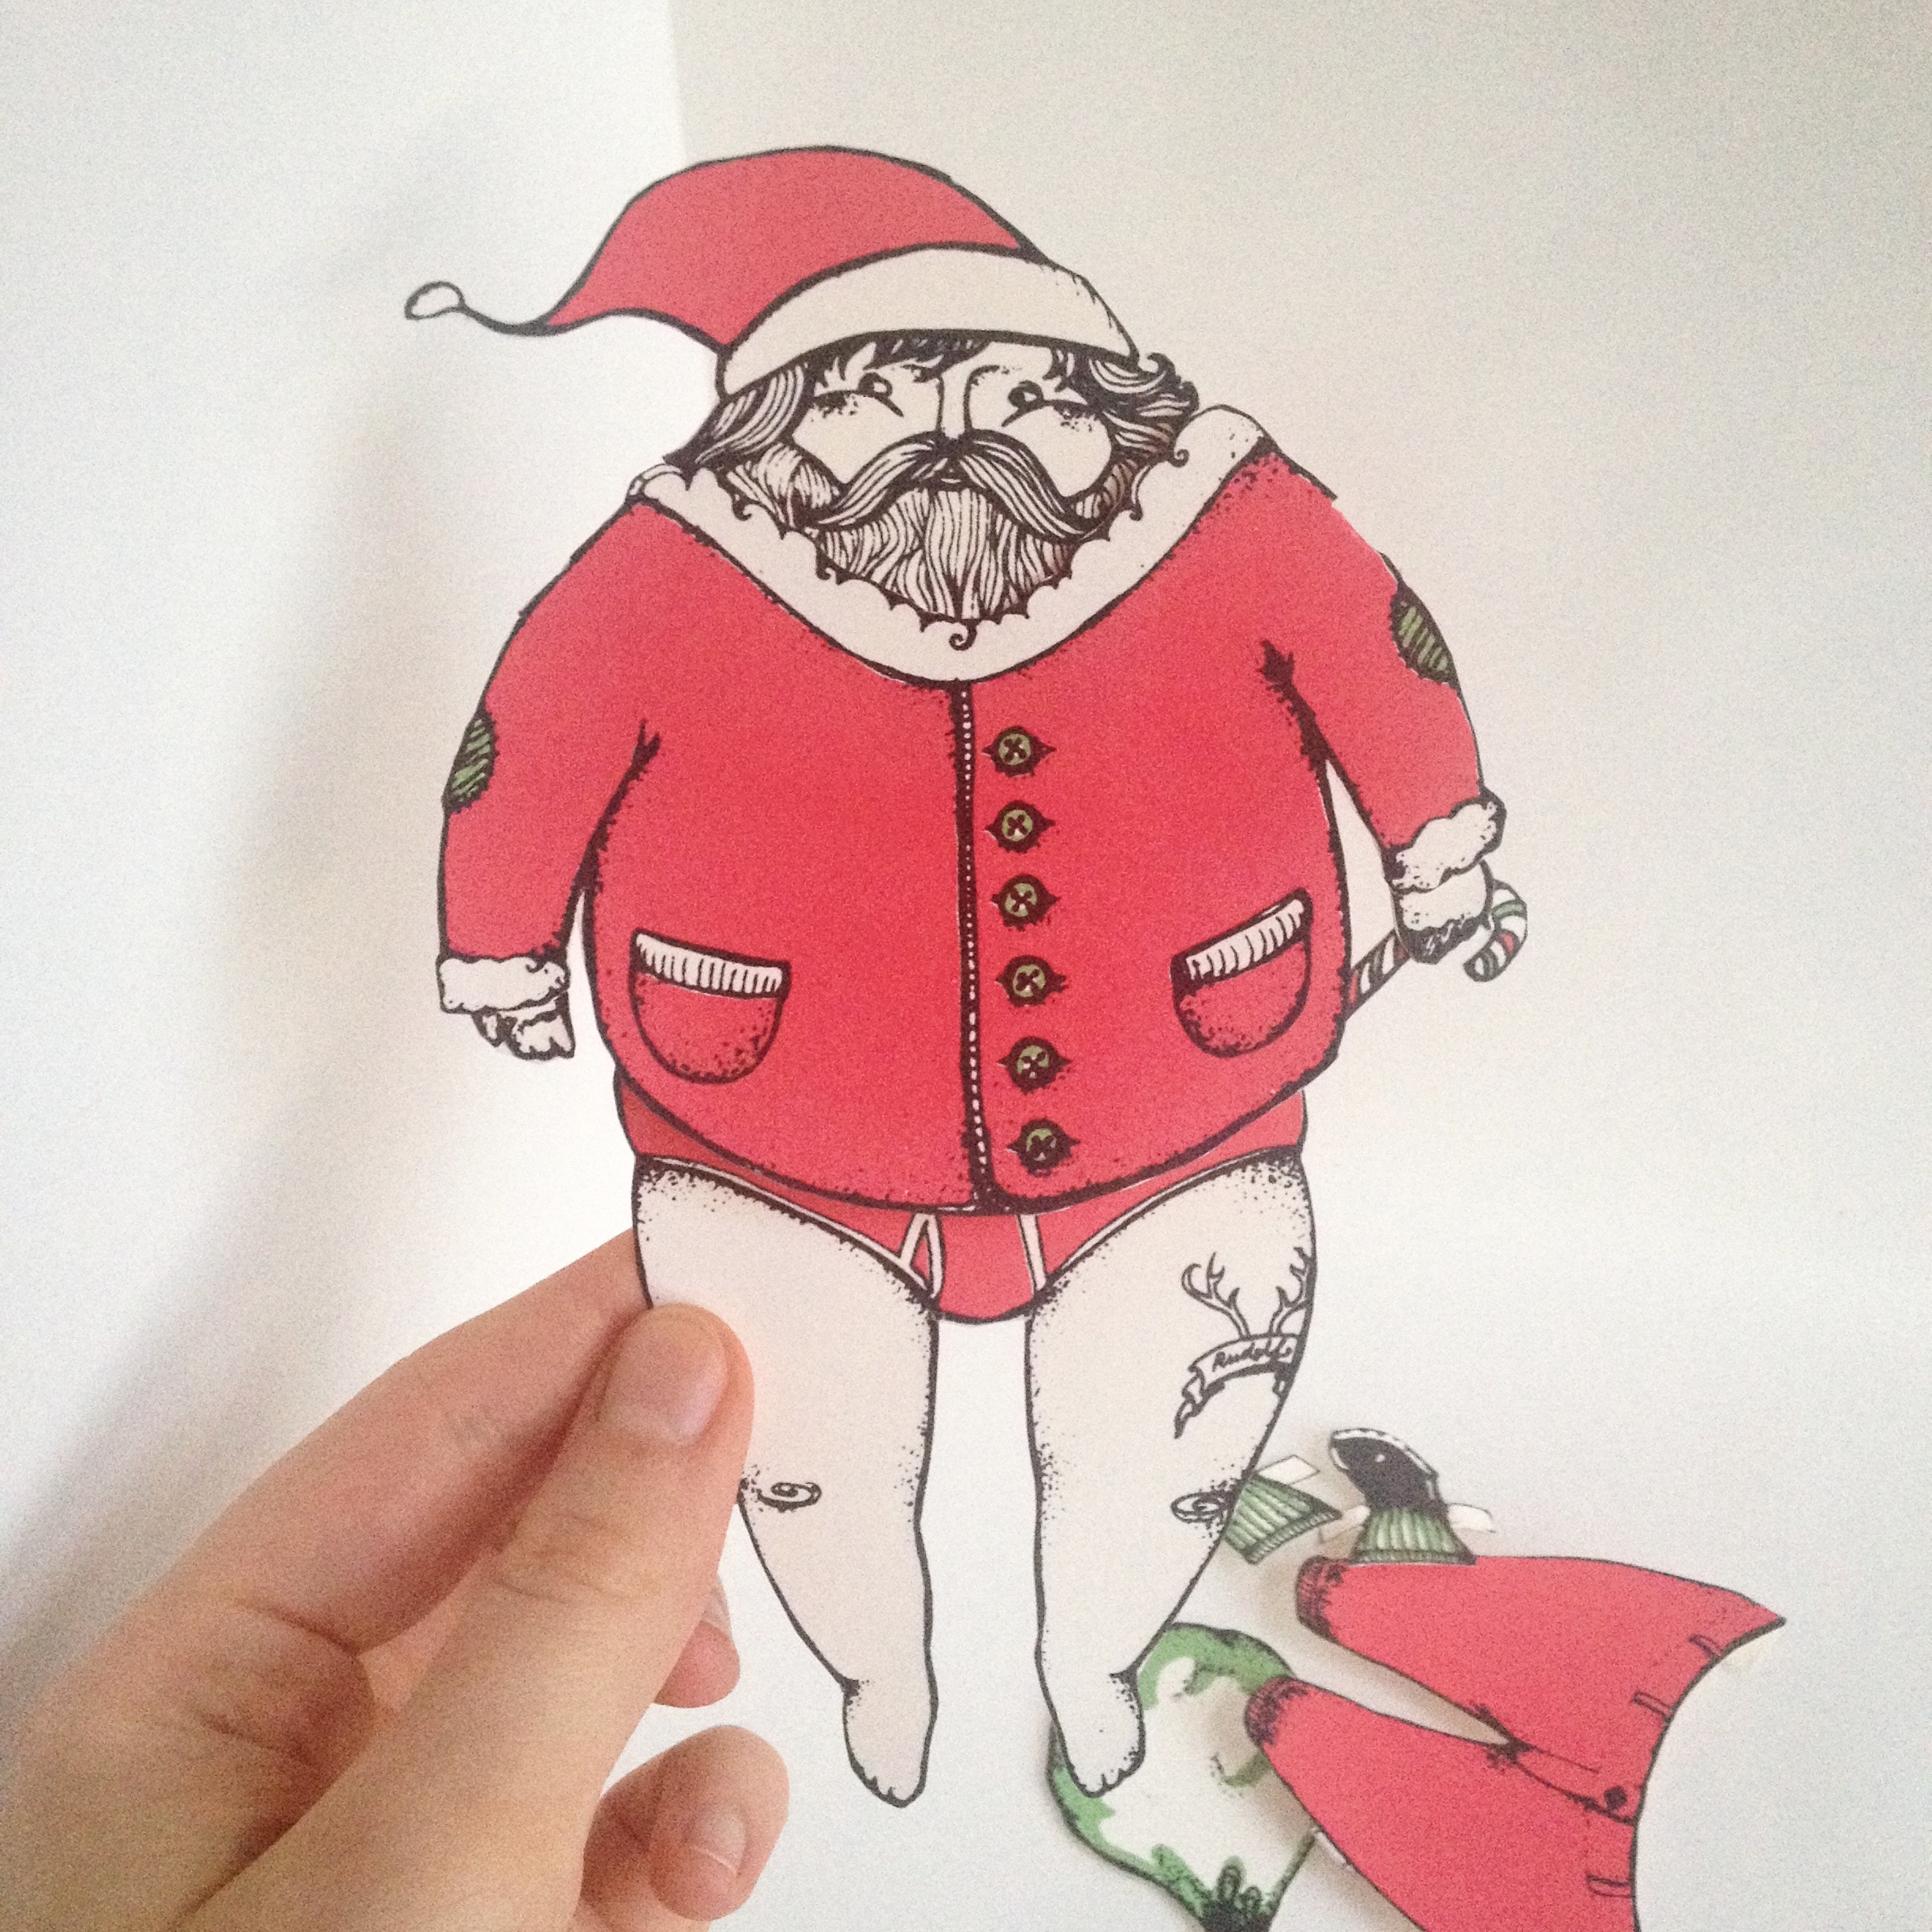 Paper Doll Santa in a state of undress